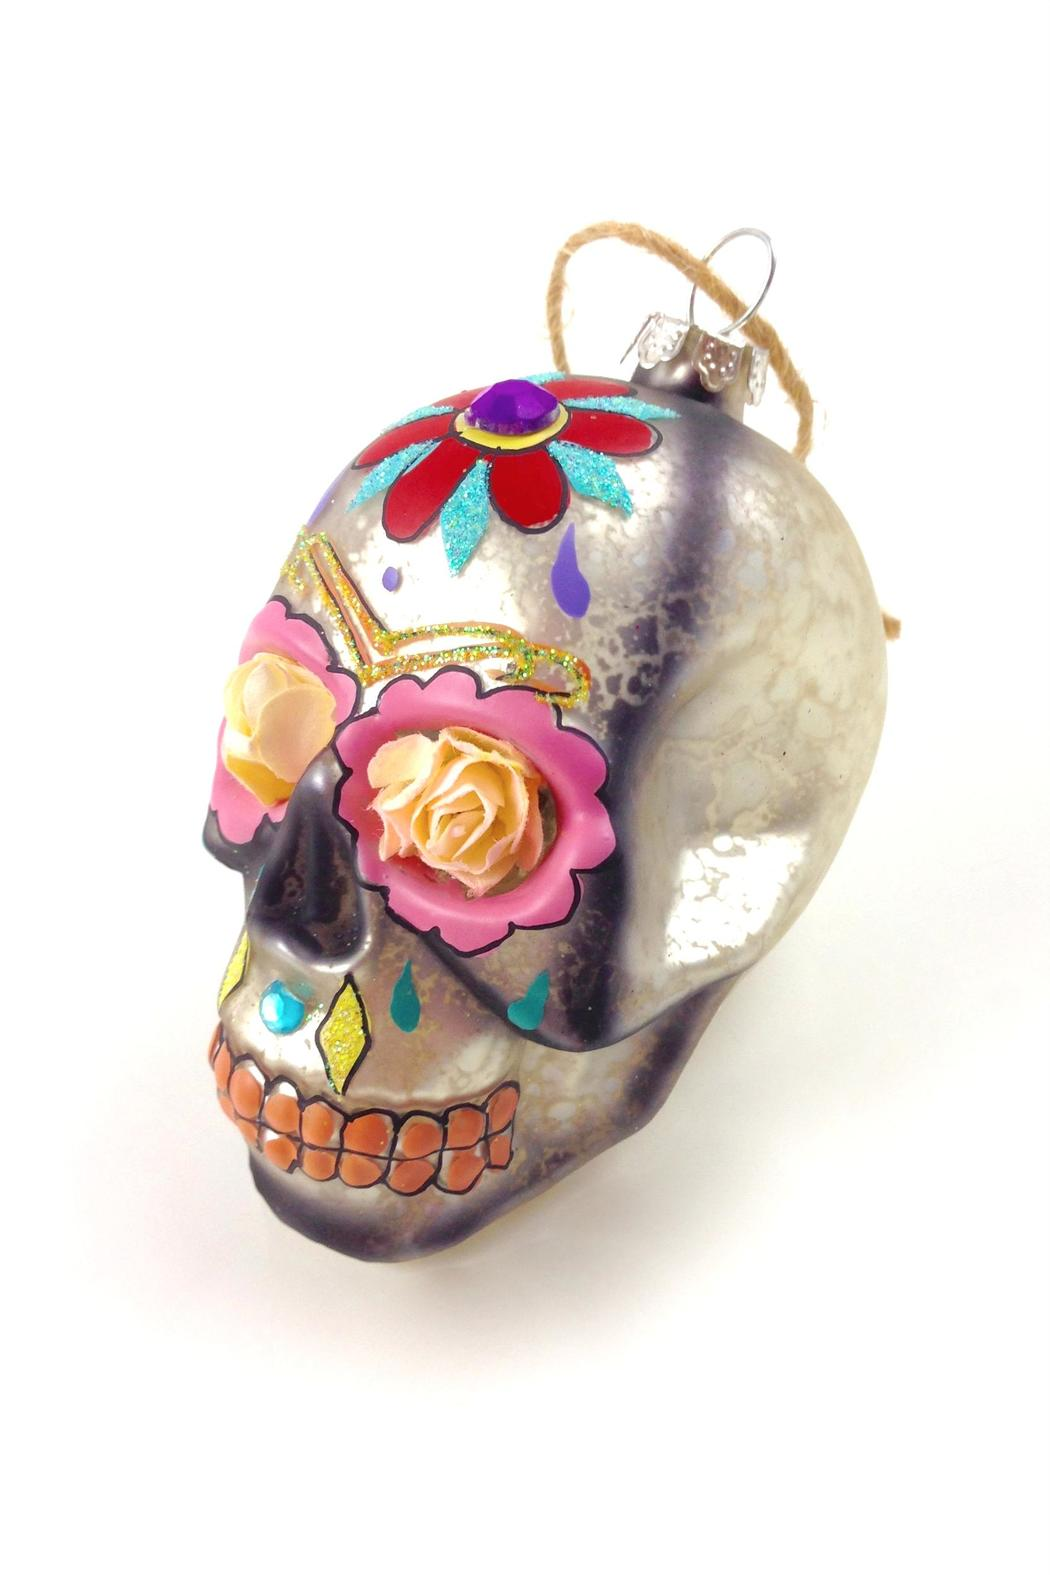 GHome2 Flower Skull Ornament from Minnesota by Go Home Furnishings & Gift